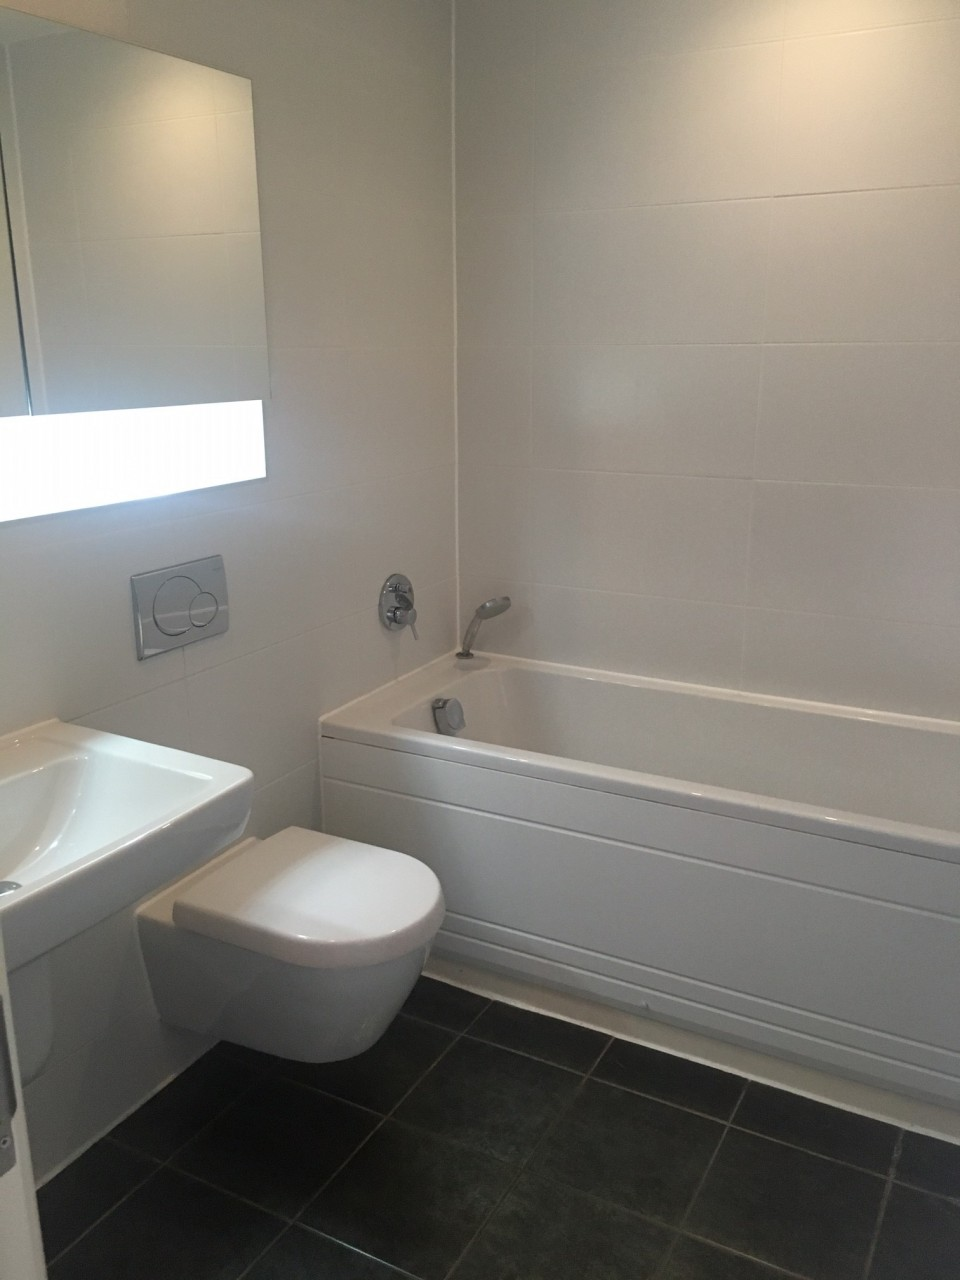 Rent An Ensuite Room In Worcester